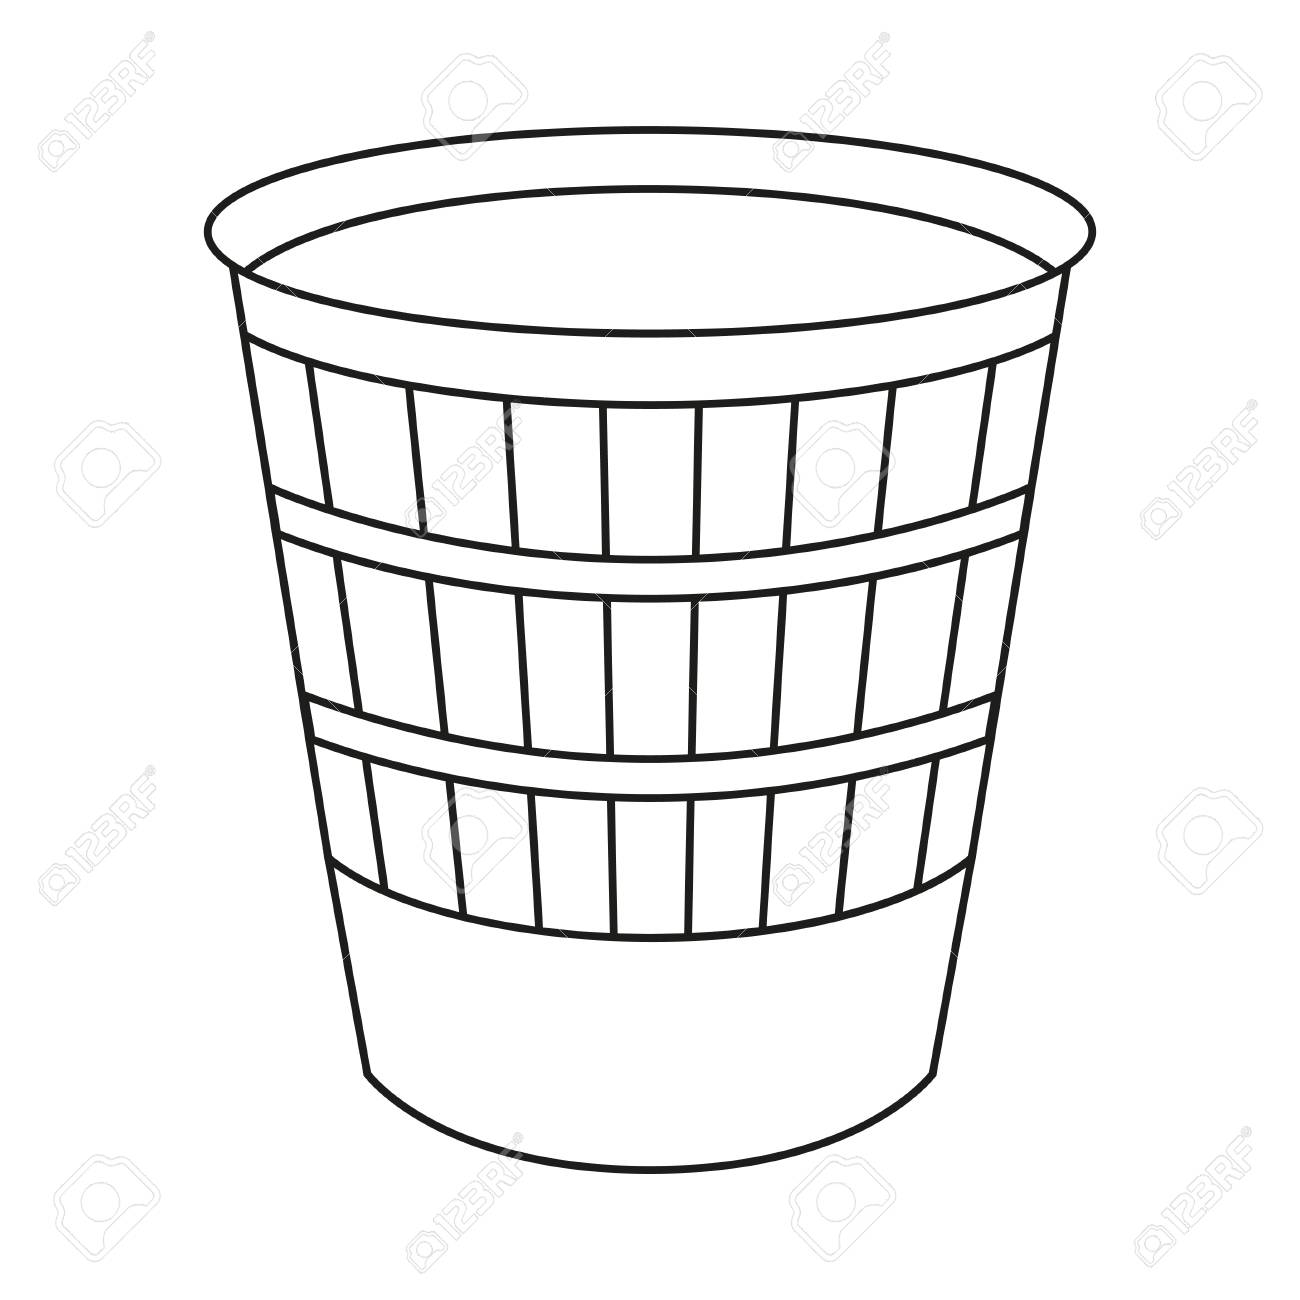 Line art black and white trash can. Kitchen garbage container....